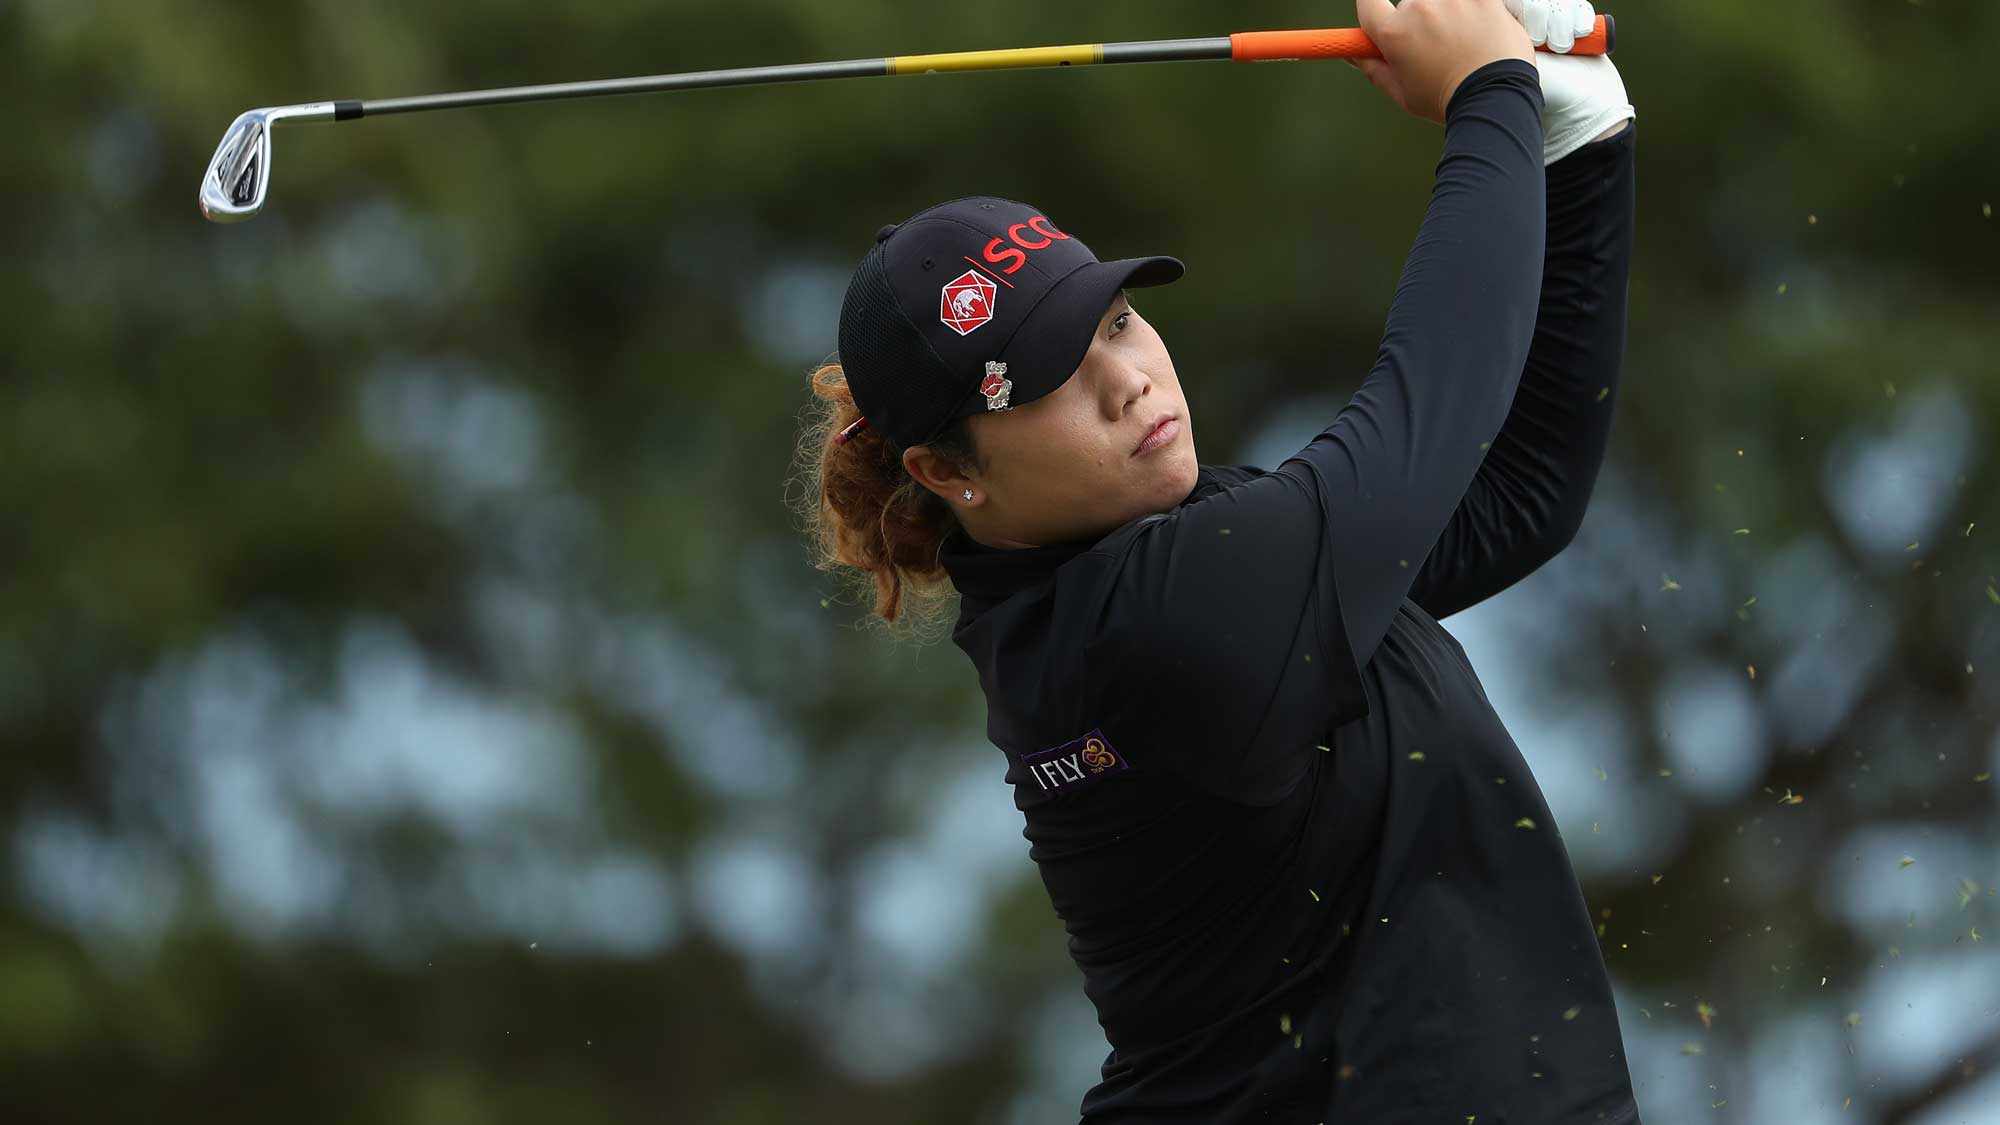 Ariya Jutanugarn of Thailand plays a tee shot on the ninth hole during the third round of the LPGA LOTTE Championship Presented By Hershey